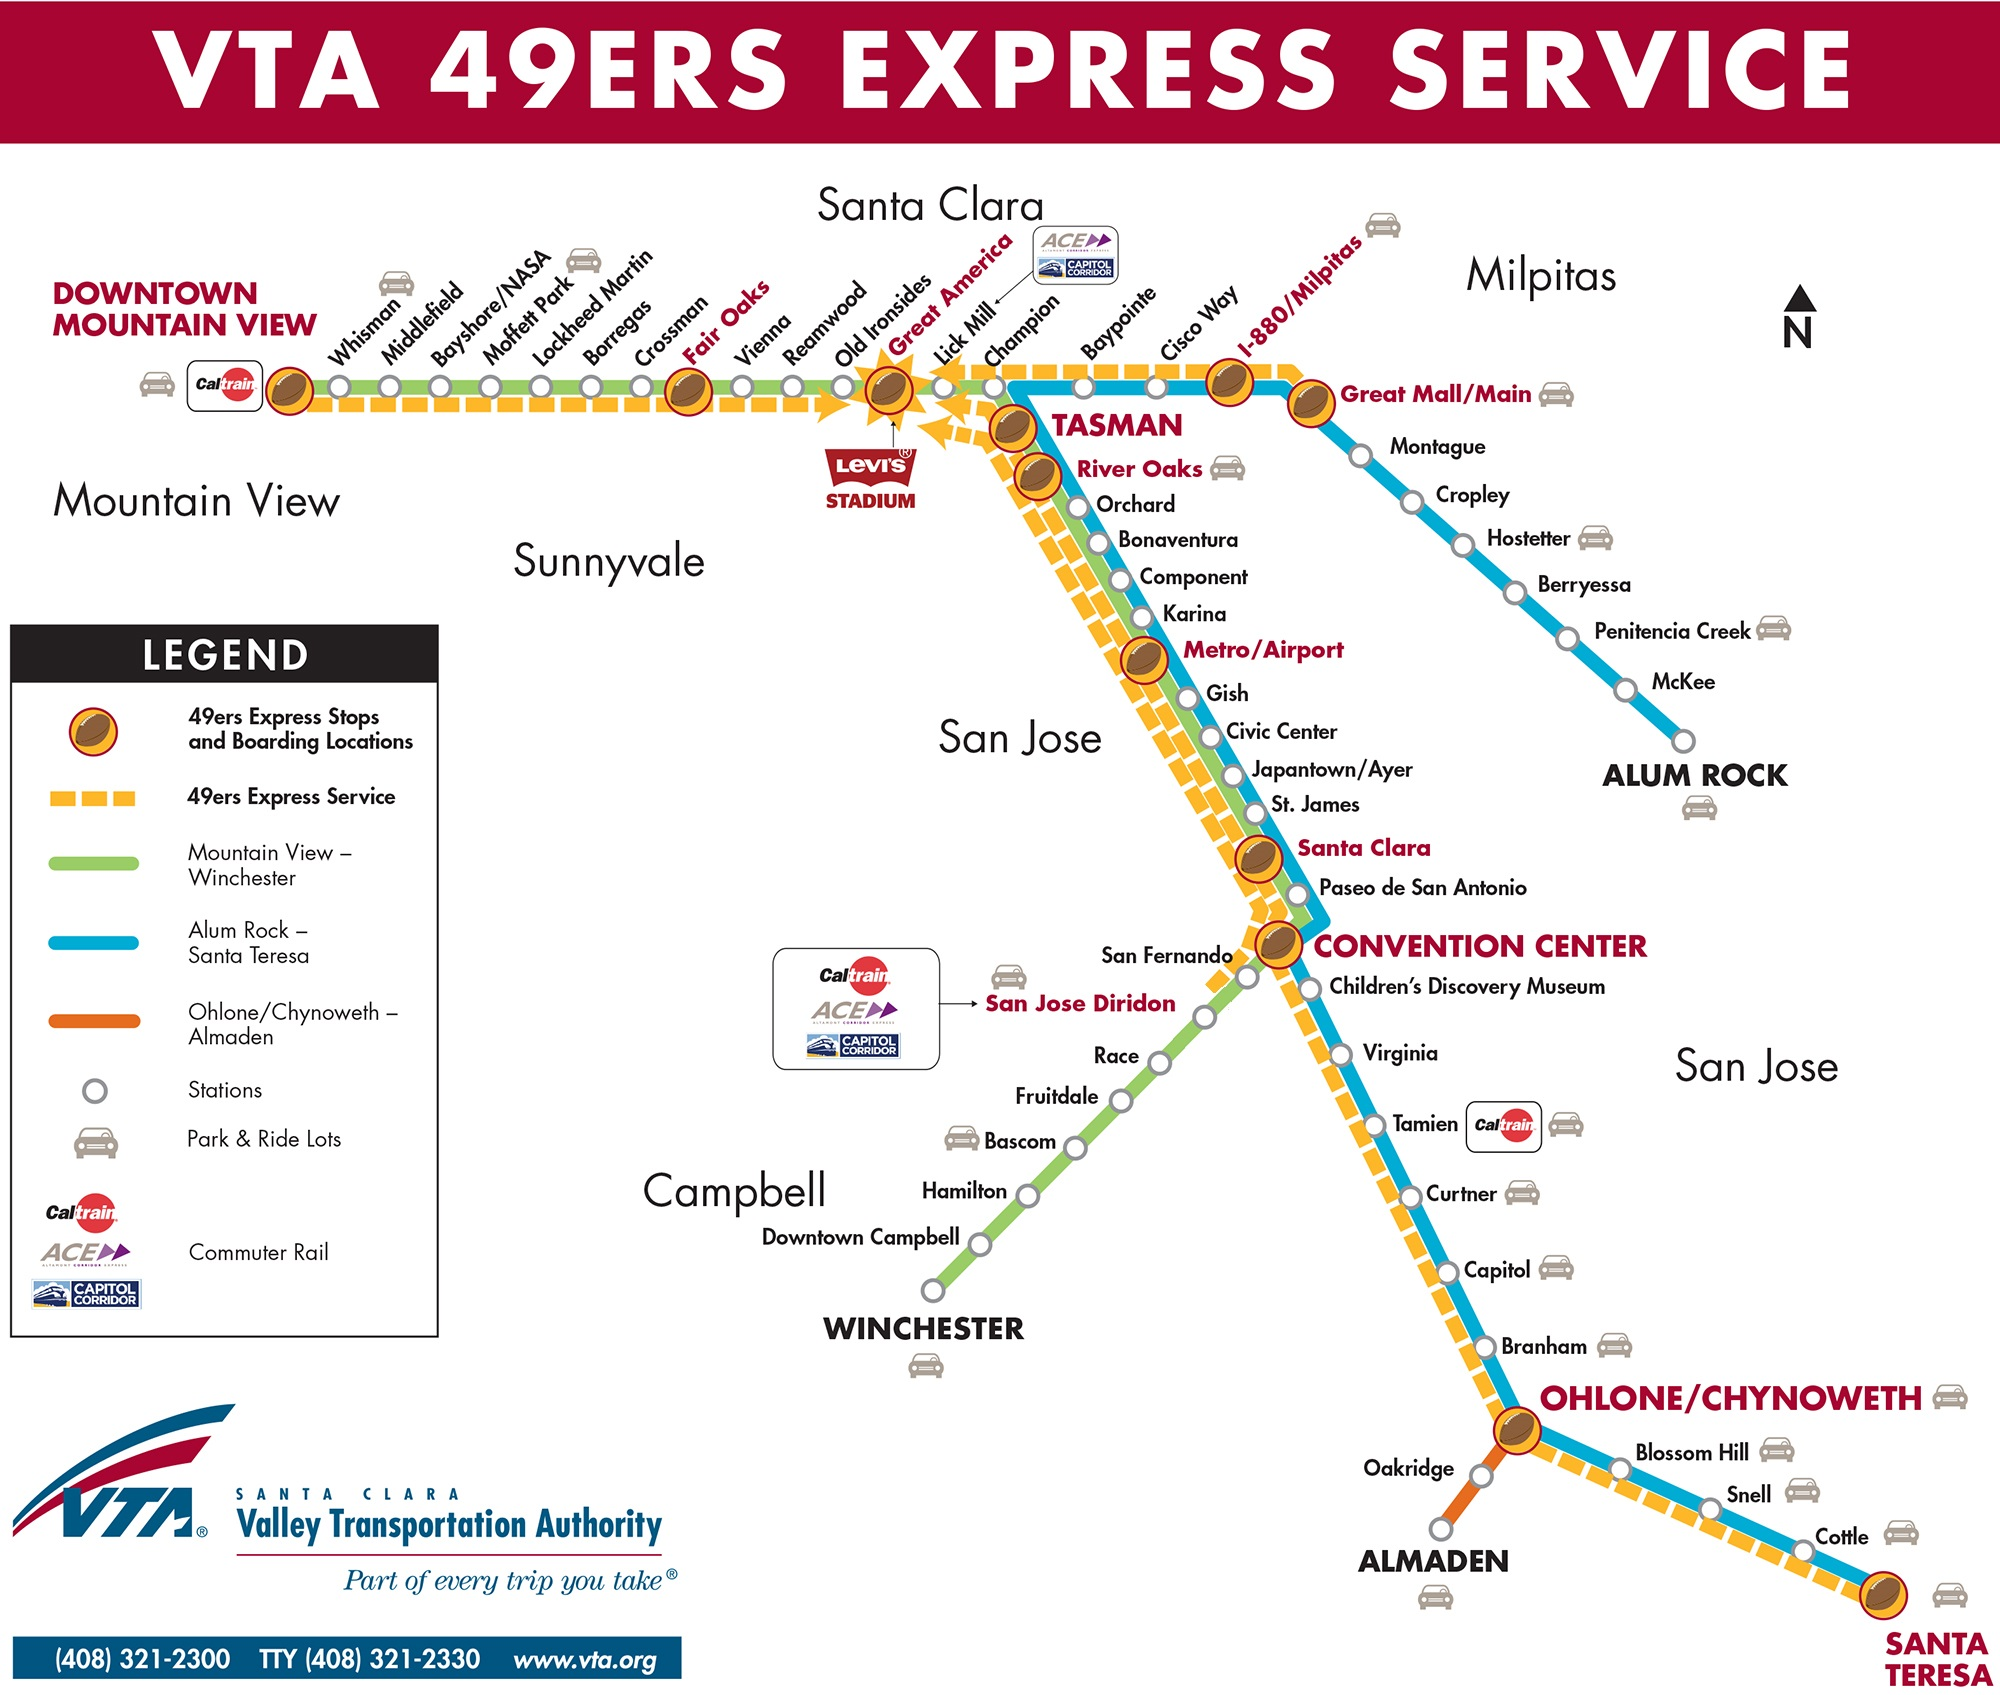 to levi's® stadium is also available from fremont bart gilroy morganhill and vallco mall however the ers season pass only applies to lightrail. ers express train coming this season